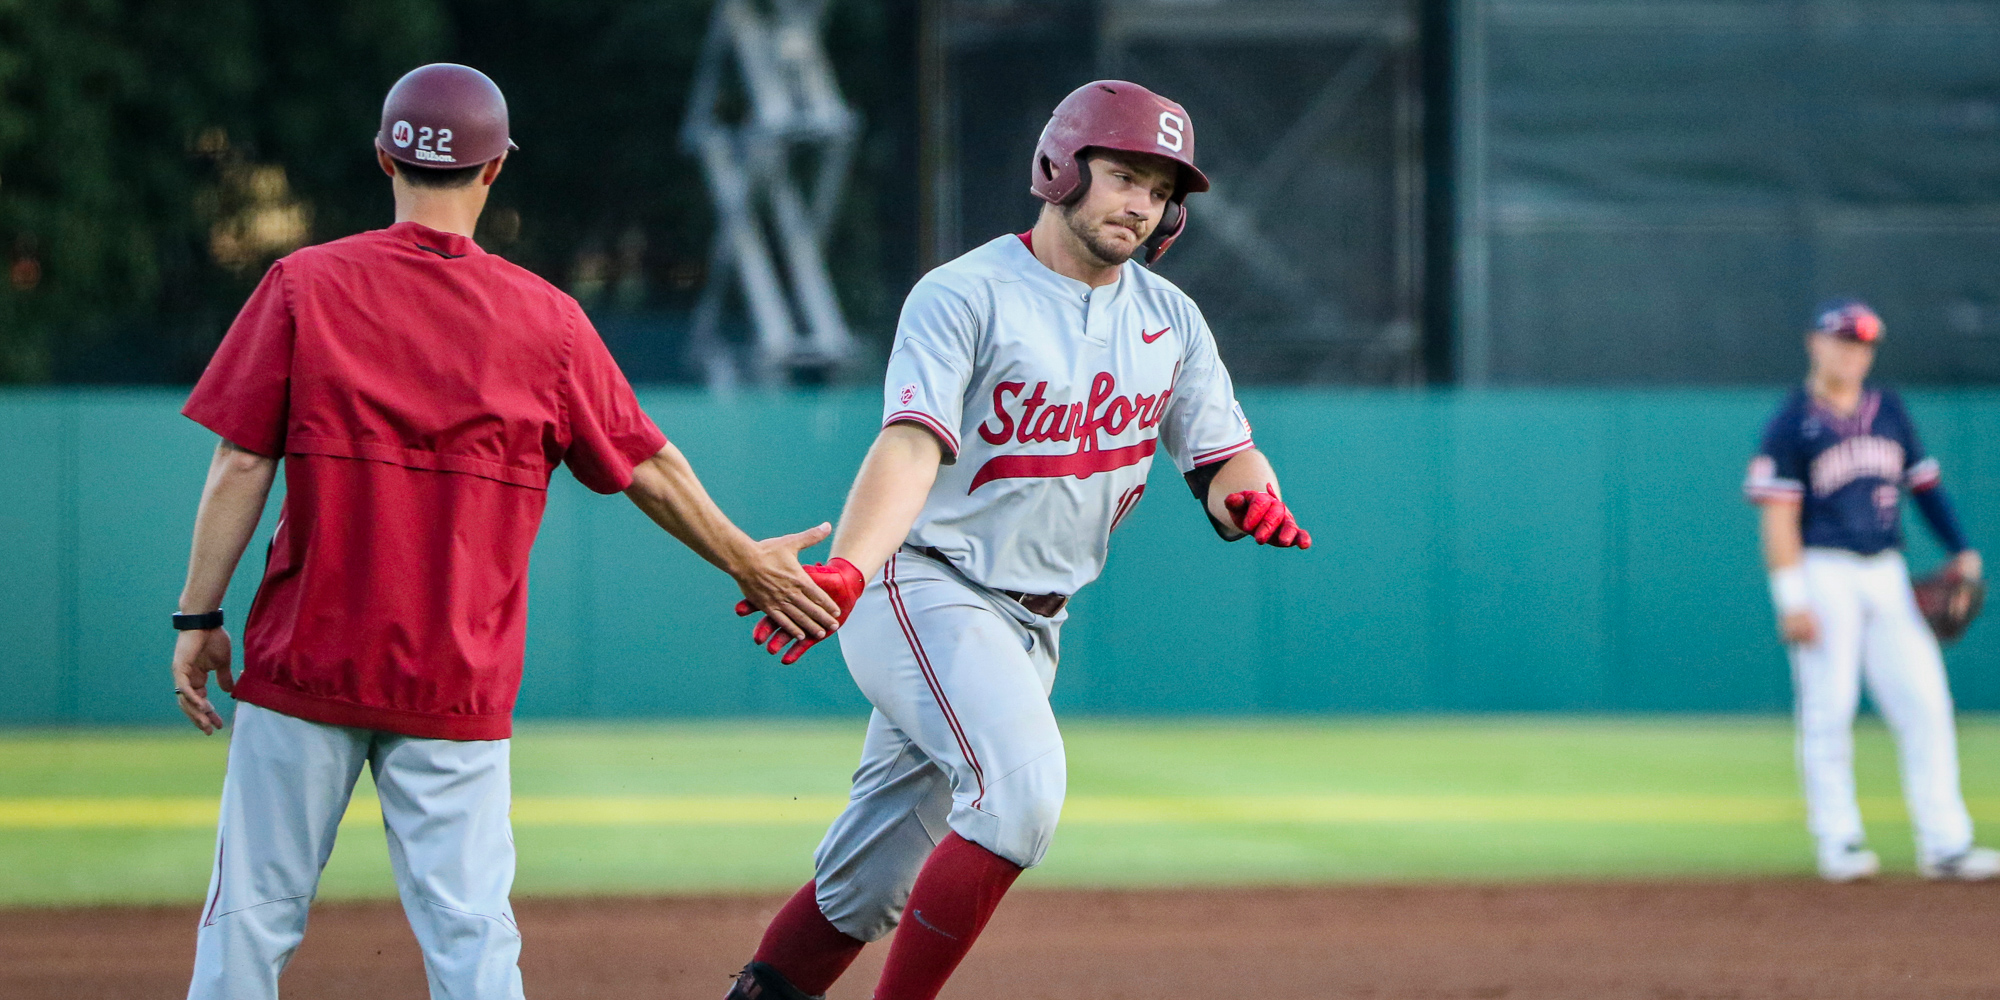 Starkville Super Regional Preview: Marquee Matchup Between Stanford, MSU • D1Baseball